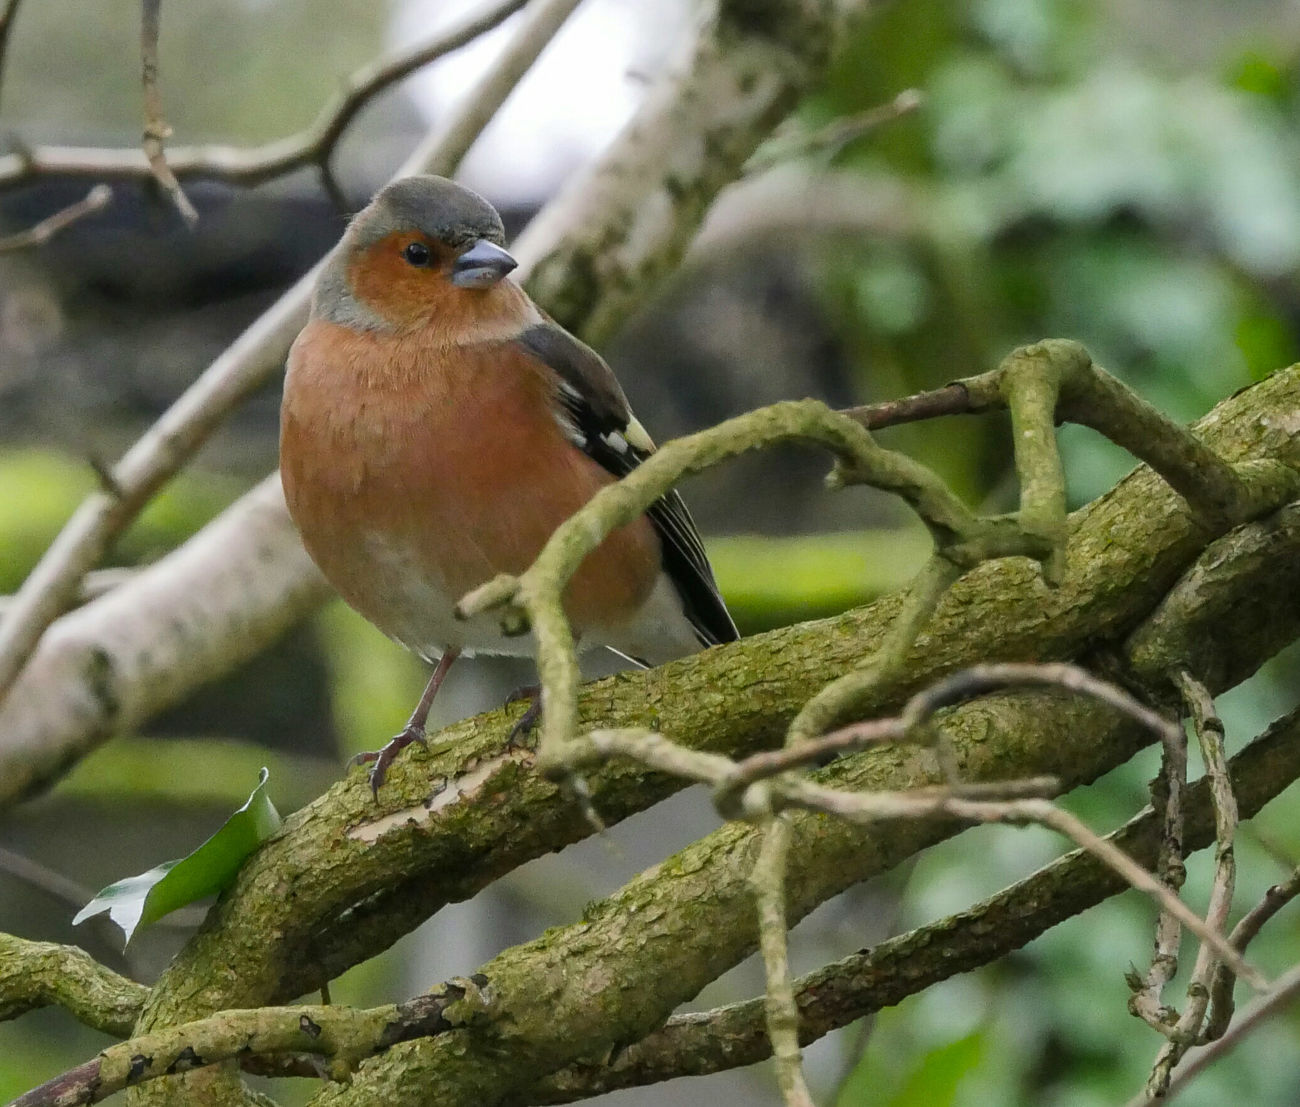 Beauty In Nature Wildlife Photography Wild Bird Nature Chaffinch Trees